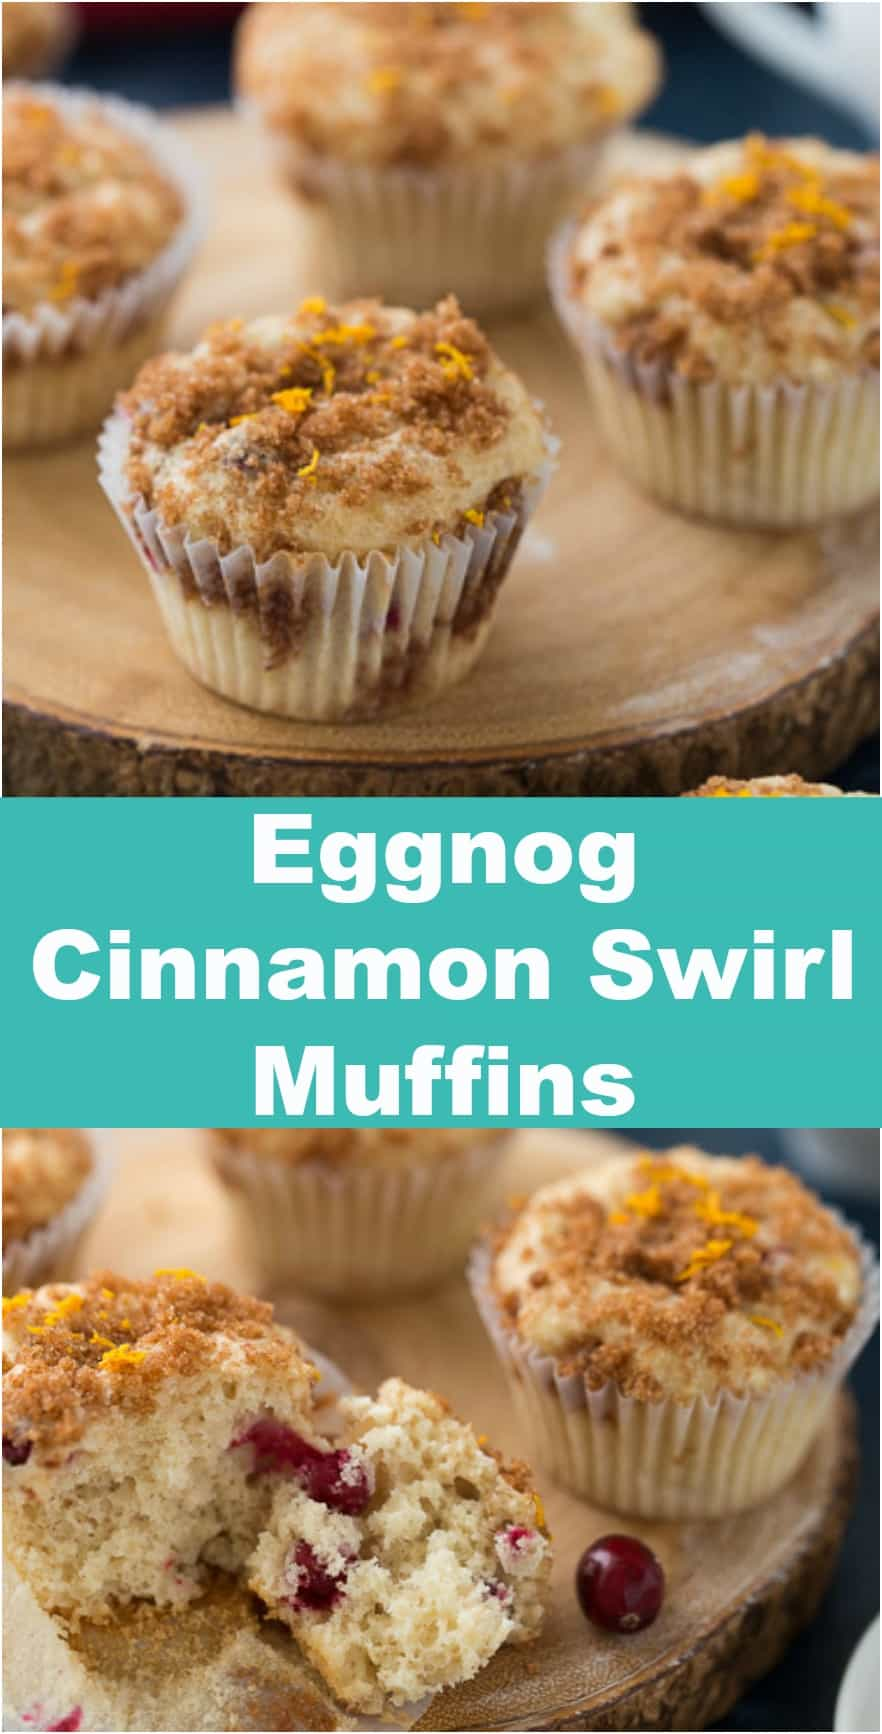 These eggnog cinnamon swirl muffins are baked with spiced eggnog, orange zest and cranberries. They are the perfect on-the-go breakfast for a busy season.#eggnog #muffins